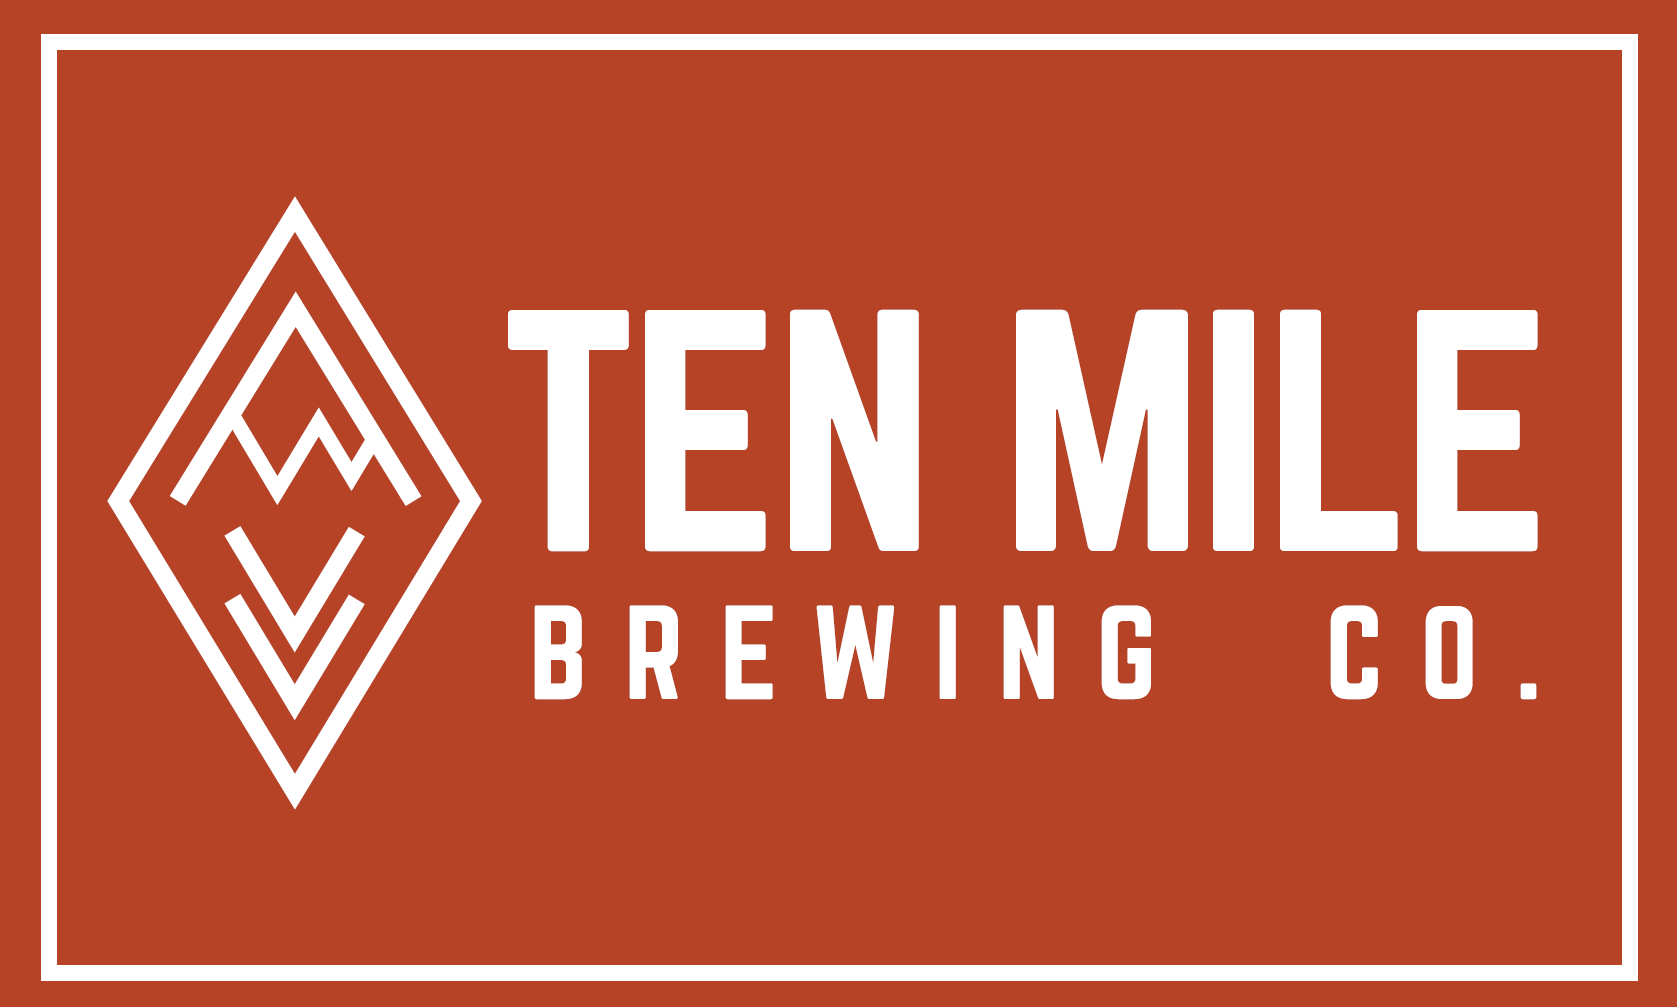 Ten Mile Brewing